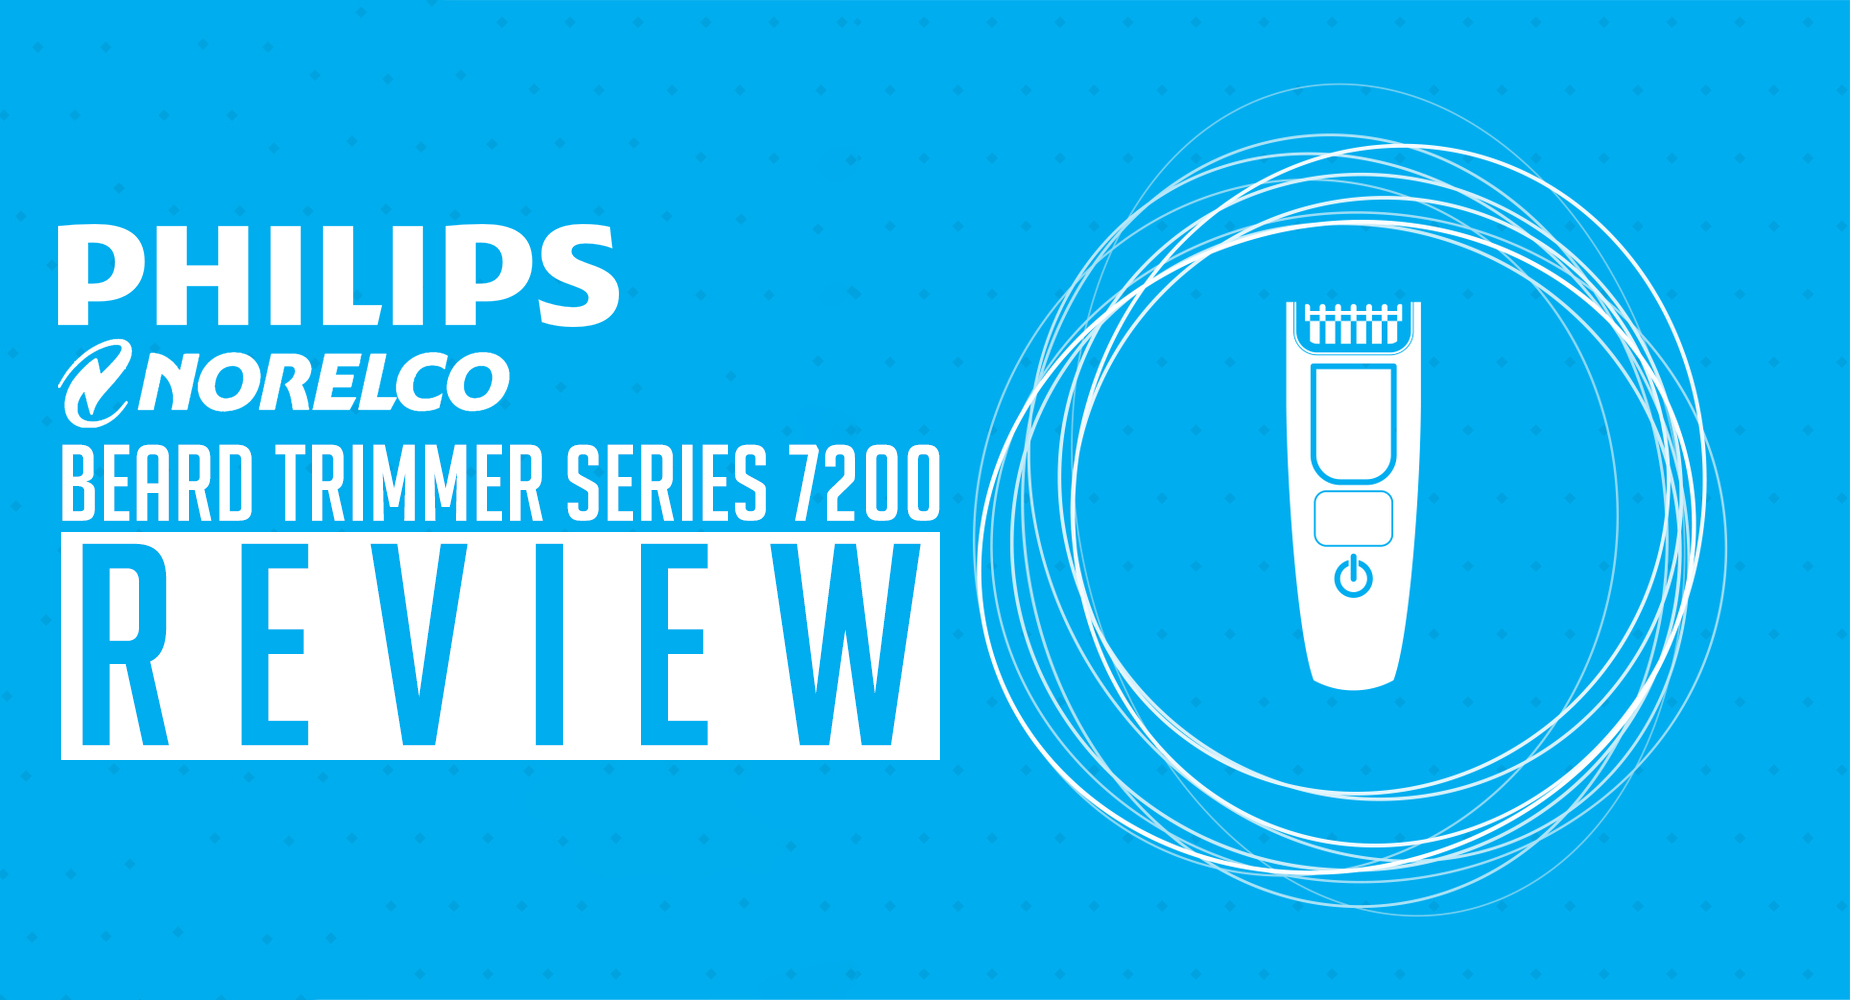 Philips Norelco Beard Trimmer Series 7200 Review